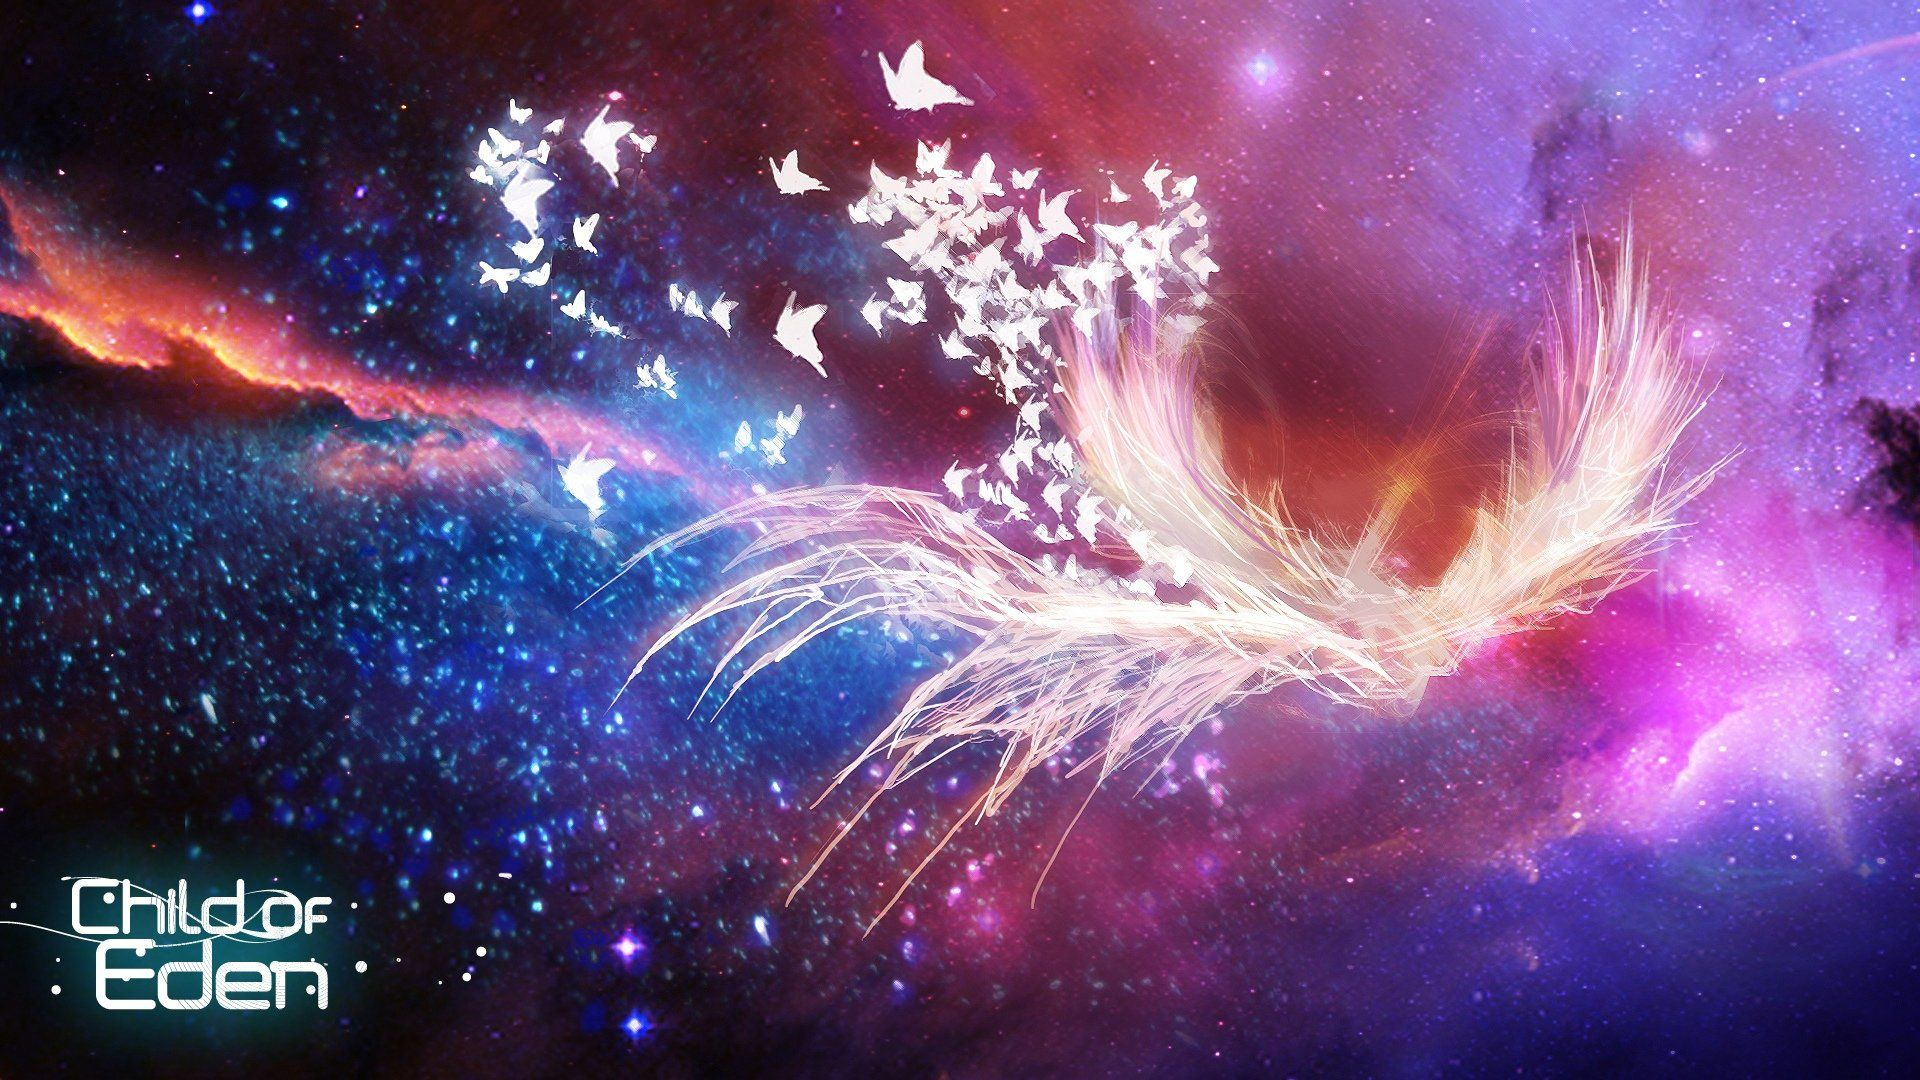 Web Background Offers Website Space Phoenix Child Wallpapers Jpg 1920 1080 Children Of Eden Eden Fantasy Concept Art